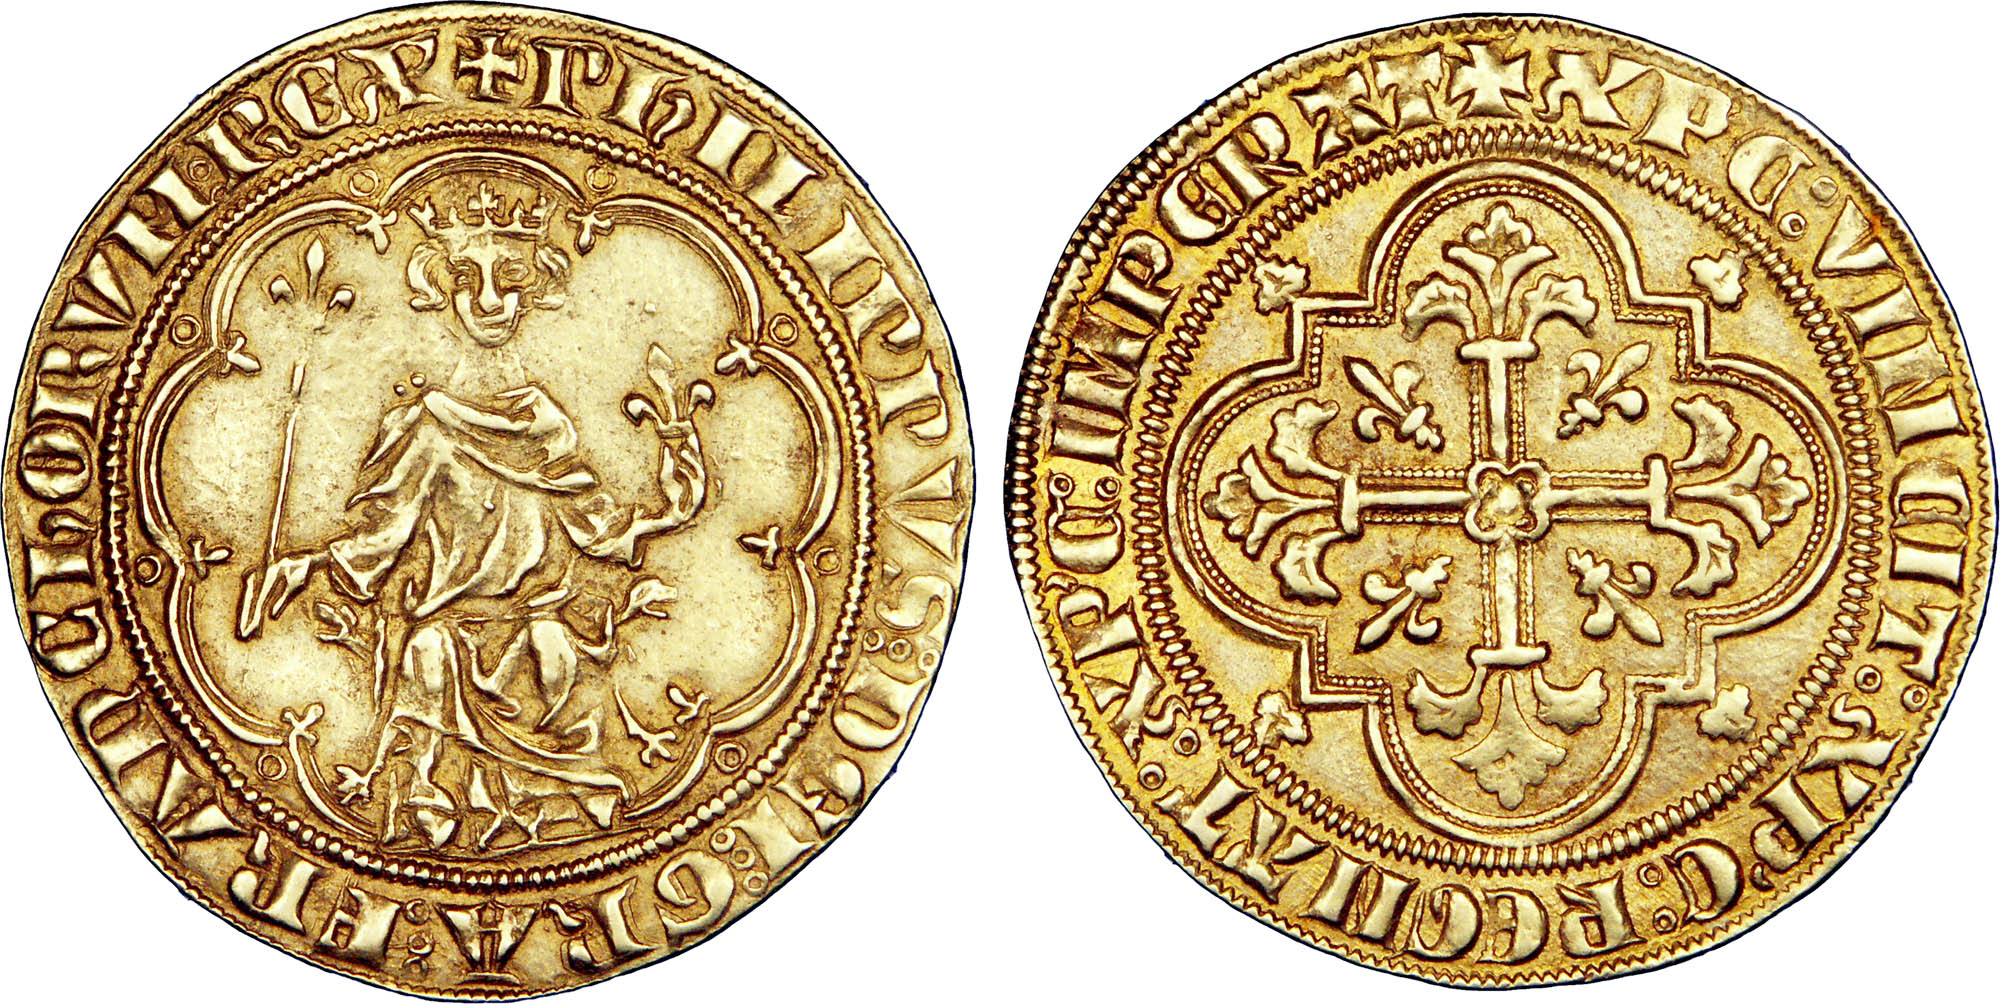 Gold coin of the reign of Philip the Fair.